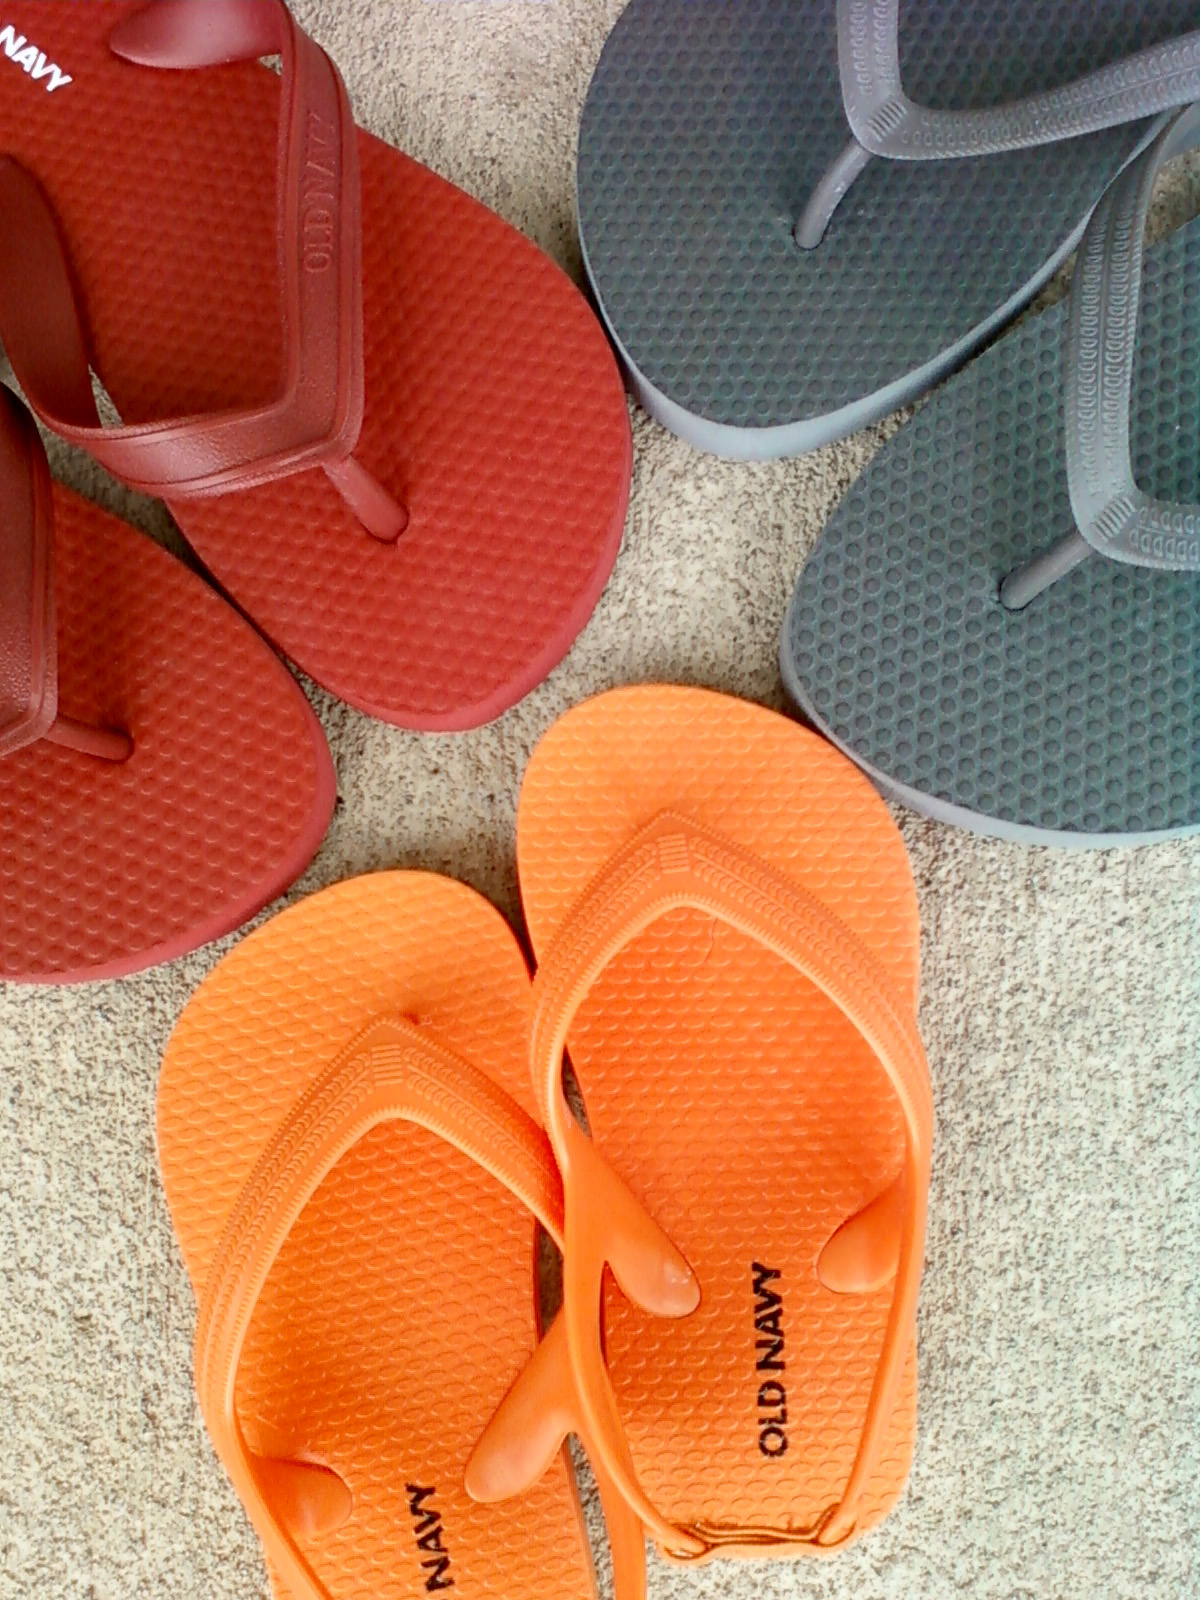 bf8469bcbf5a I got one for each of my boys and a pair for me. When I got home my husband  remarked that he wished all the flip flops came with the cool strap ...